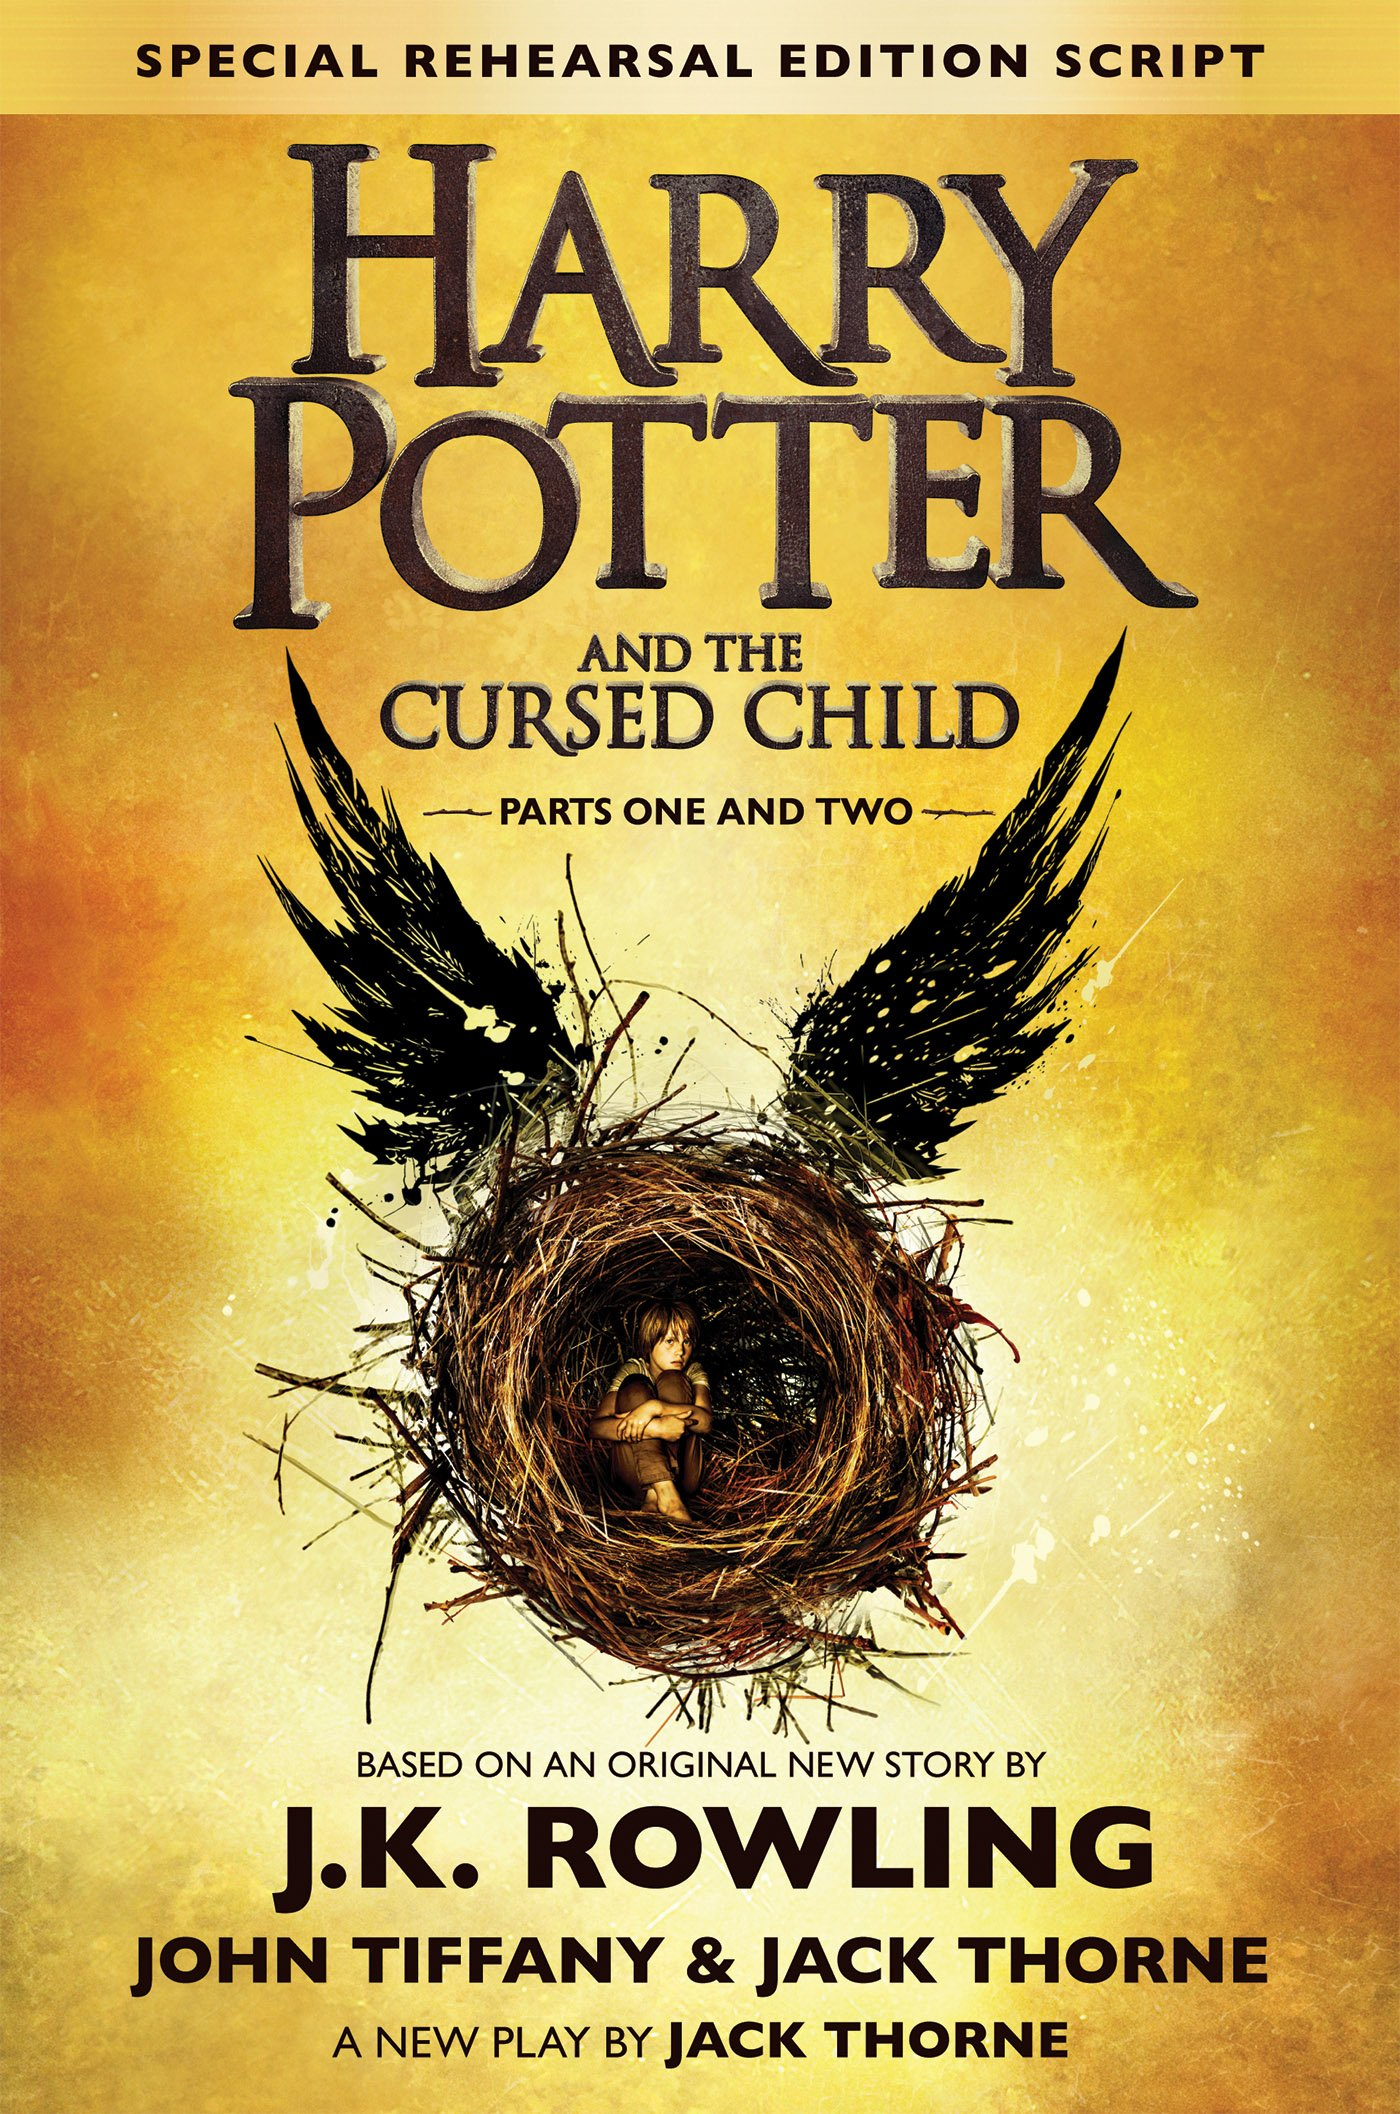 Image result for harry potter and the cursed child book cover